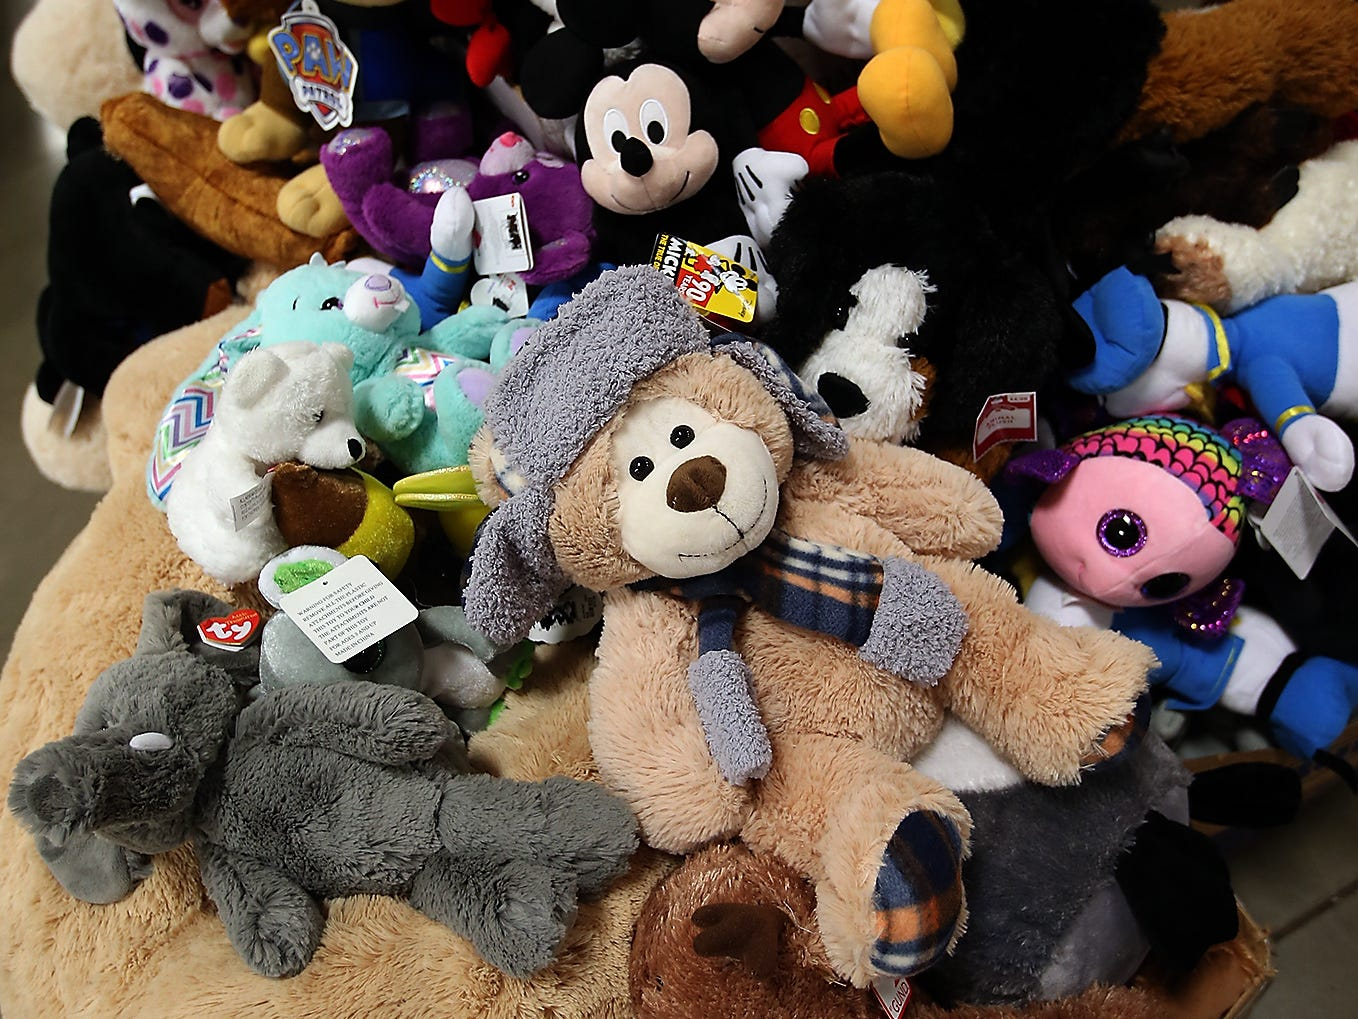 Stuffed animals of all shape and sizes await the upcoming Toys For Tots event in President's Hall at the Kitsap County Fairgrounds on Wednesday, December 12, 2018.